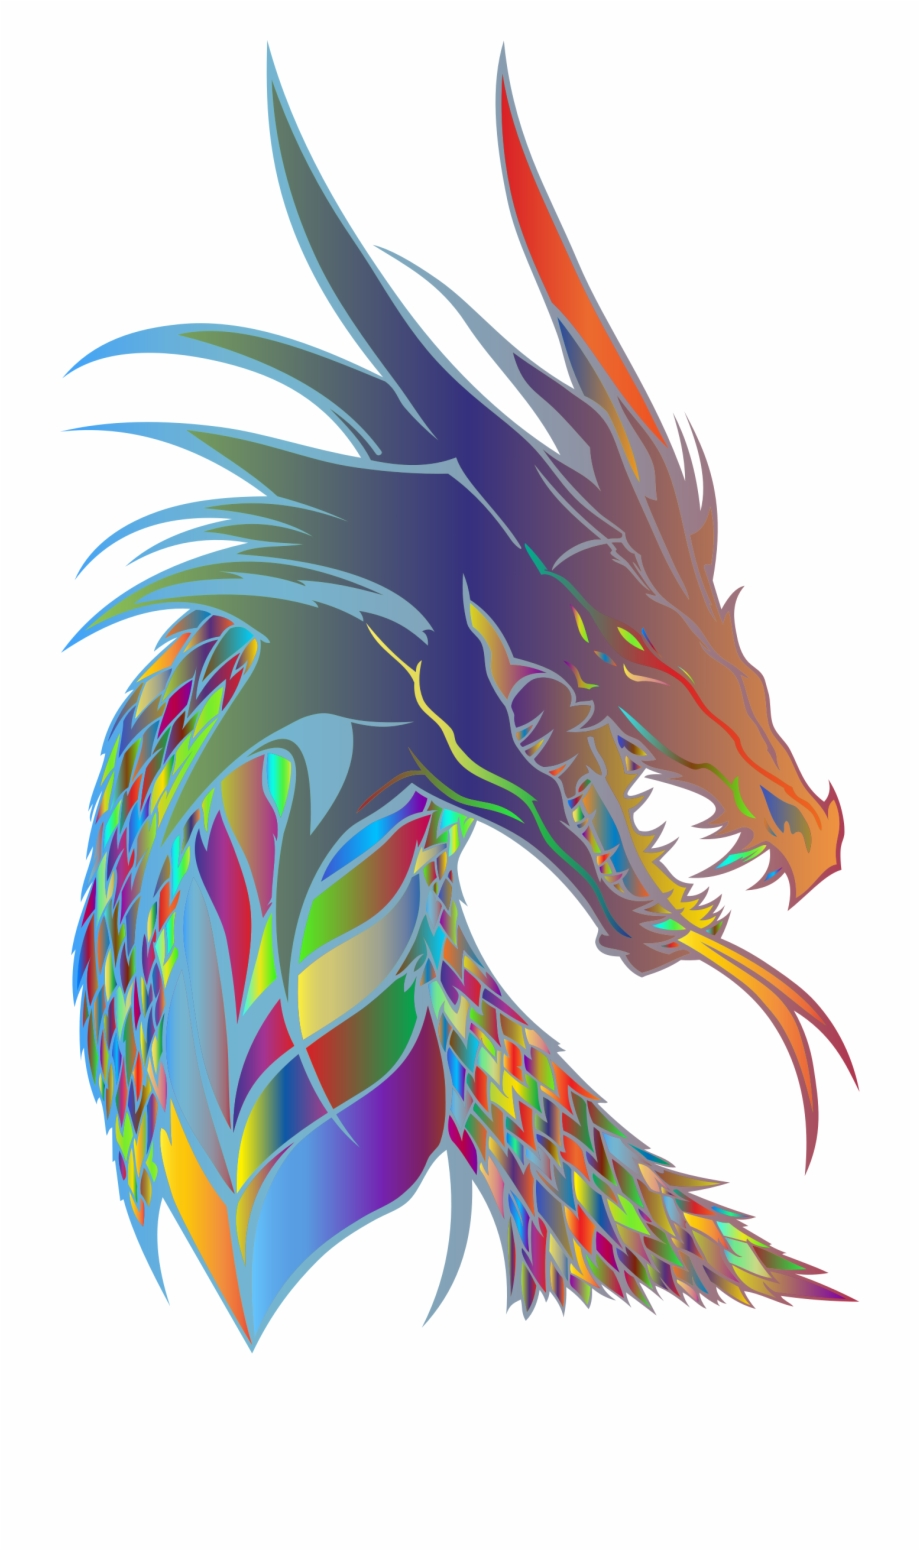 Dragon Clipart PNG, Transparent Dragon Clipart PNG Image Free Download -  PNGkey